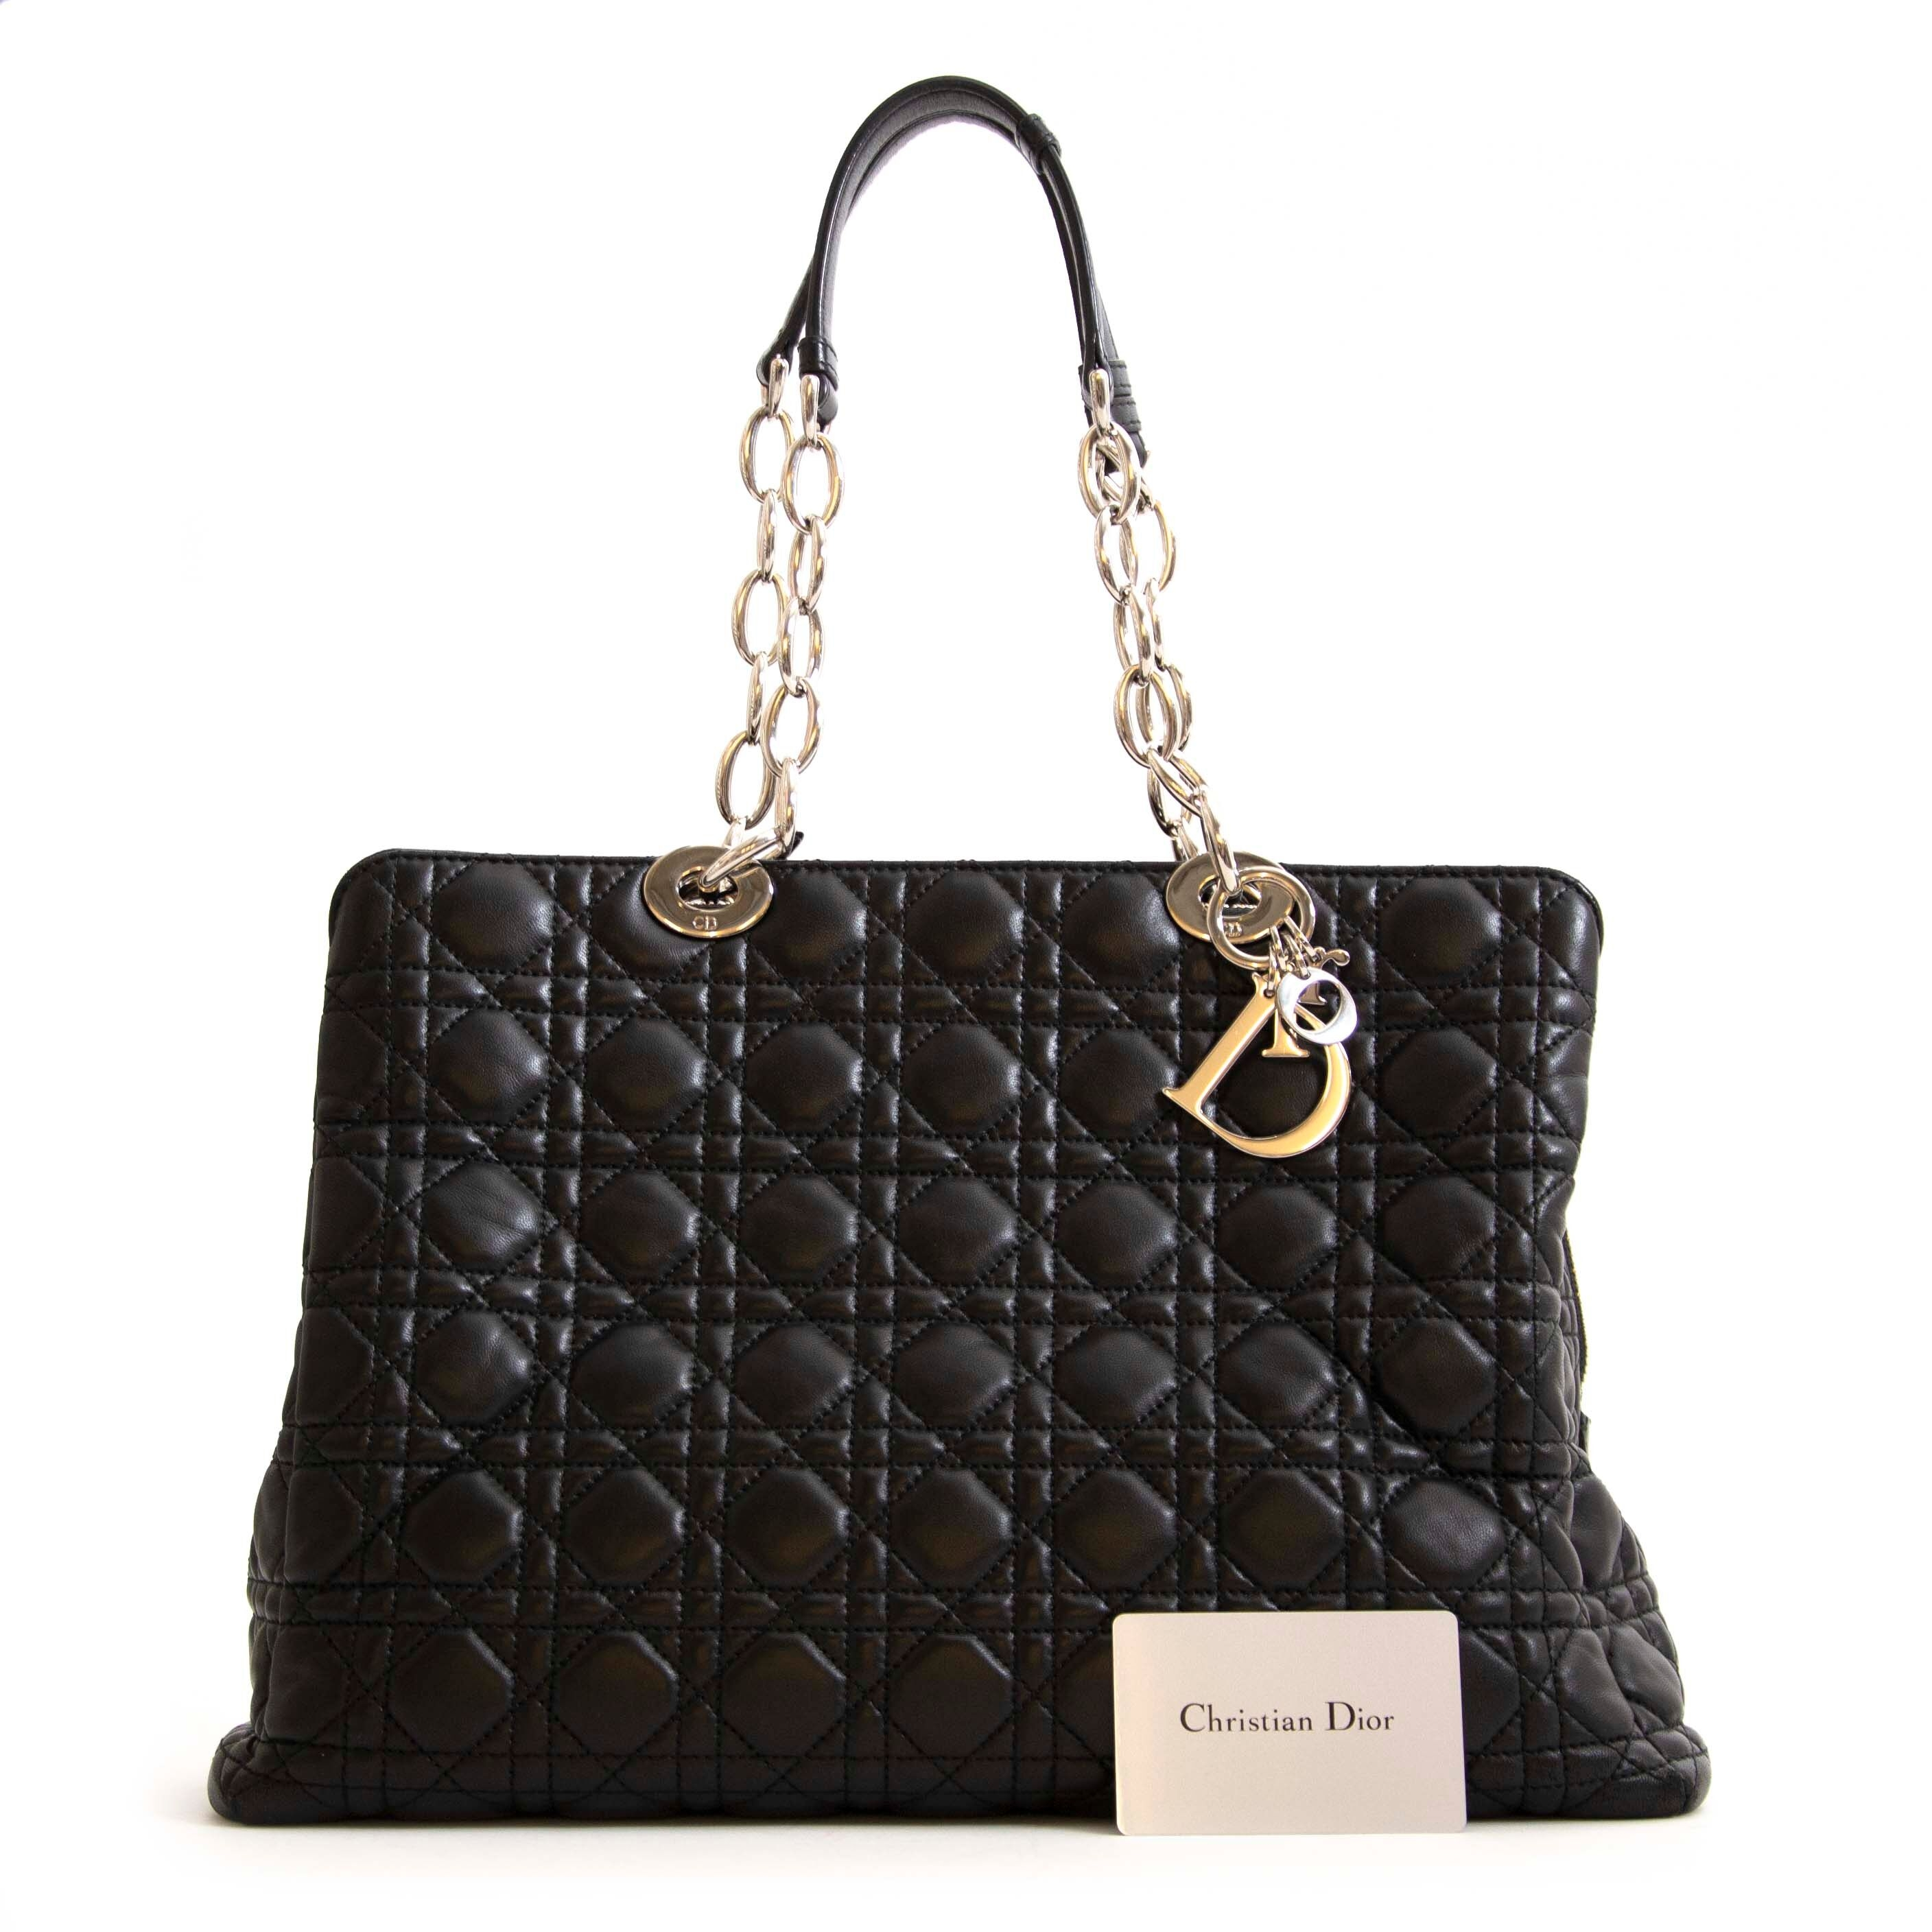 Acheter en ligne seconde main Christian Dior Lambskin Cannage Large Black Soft Shopping Tote.